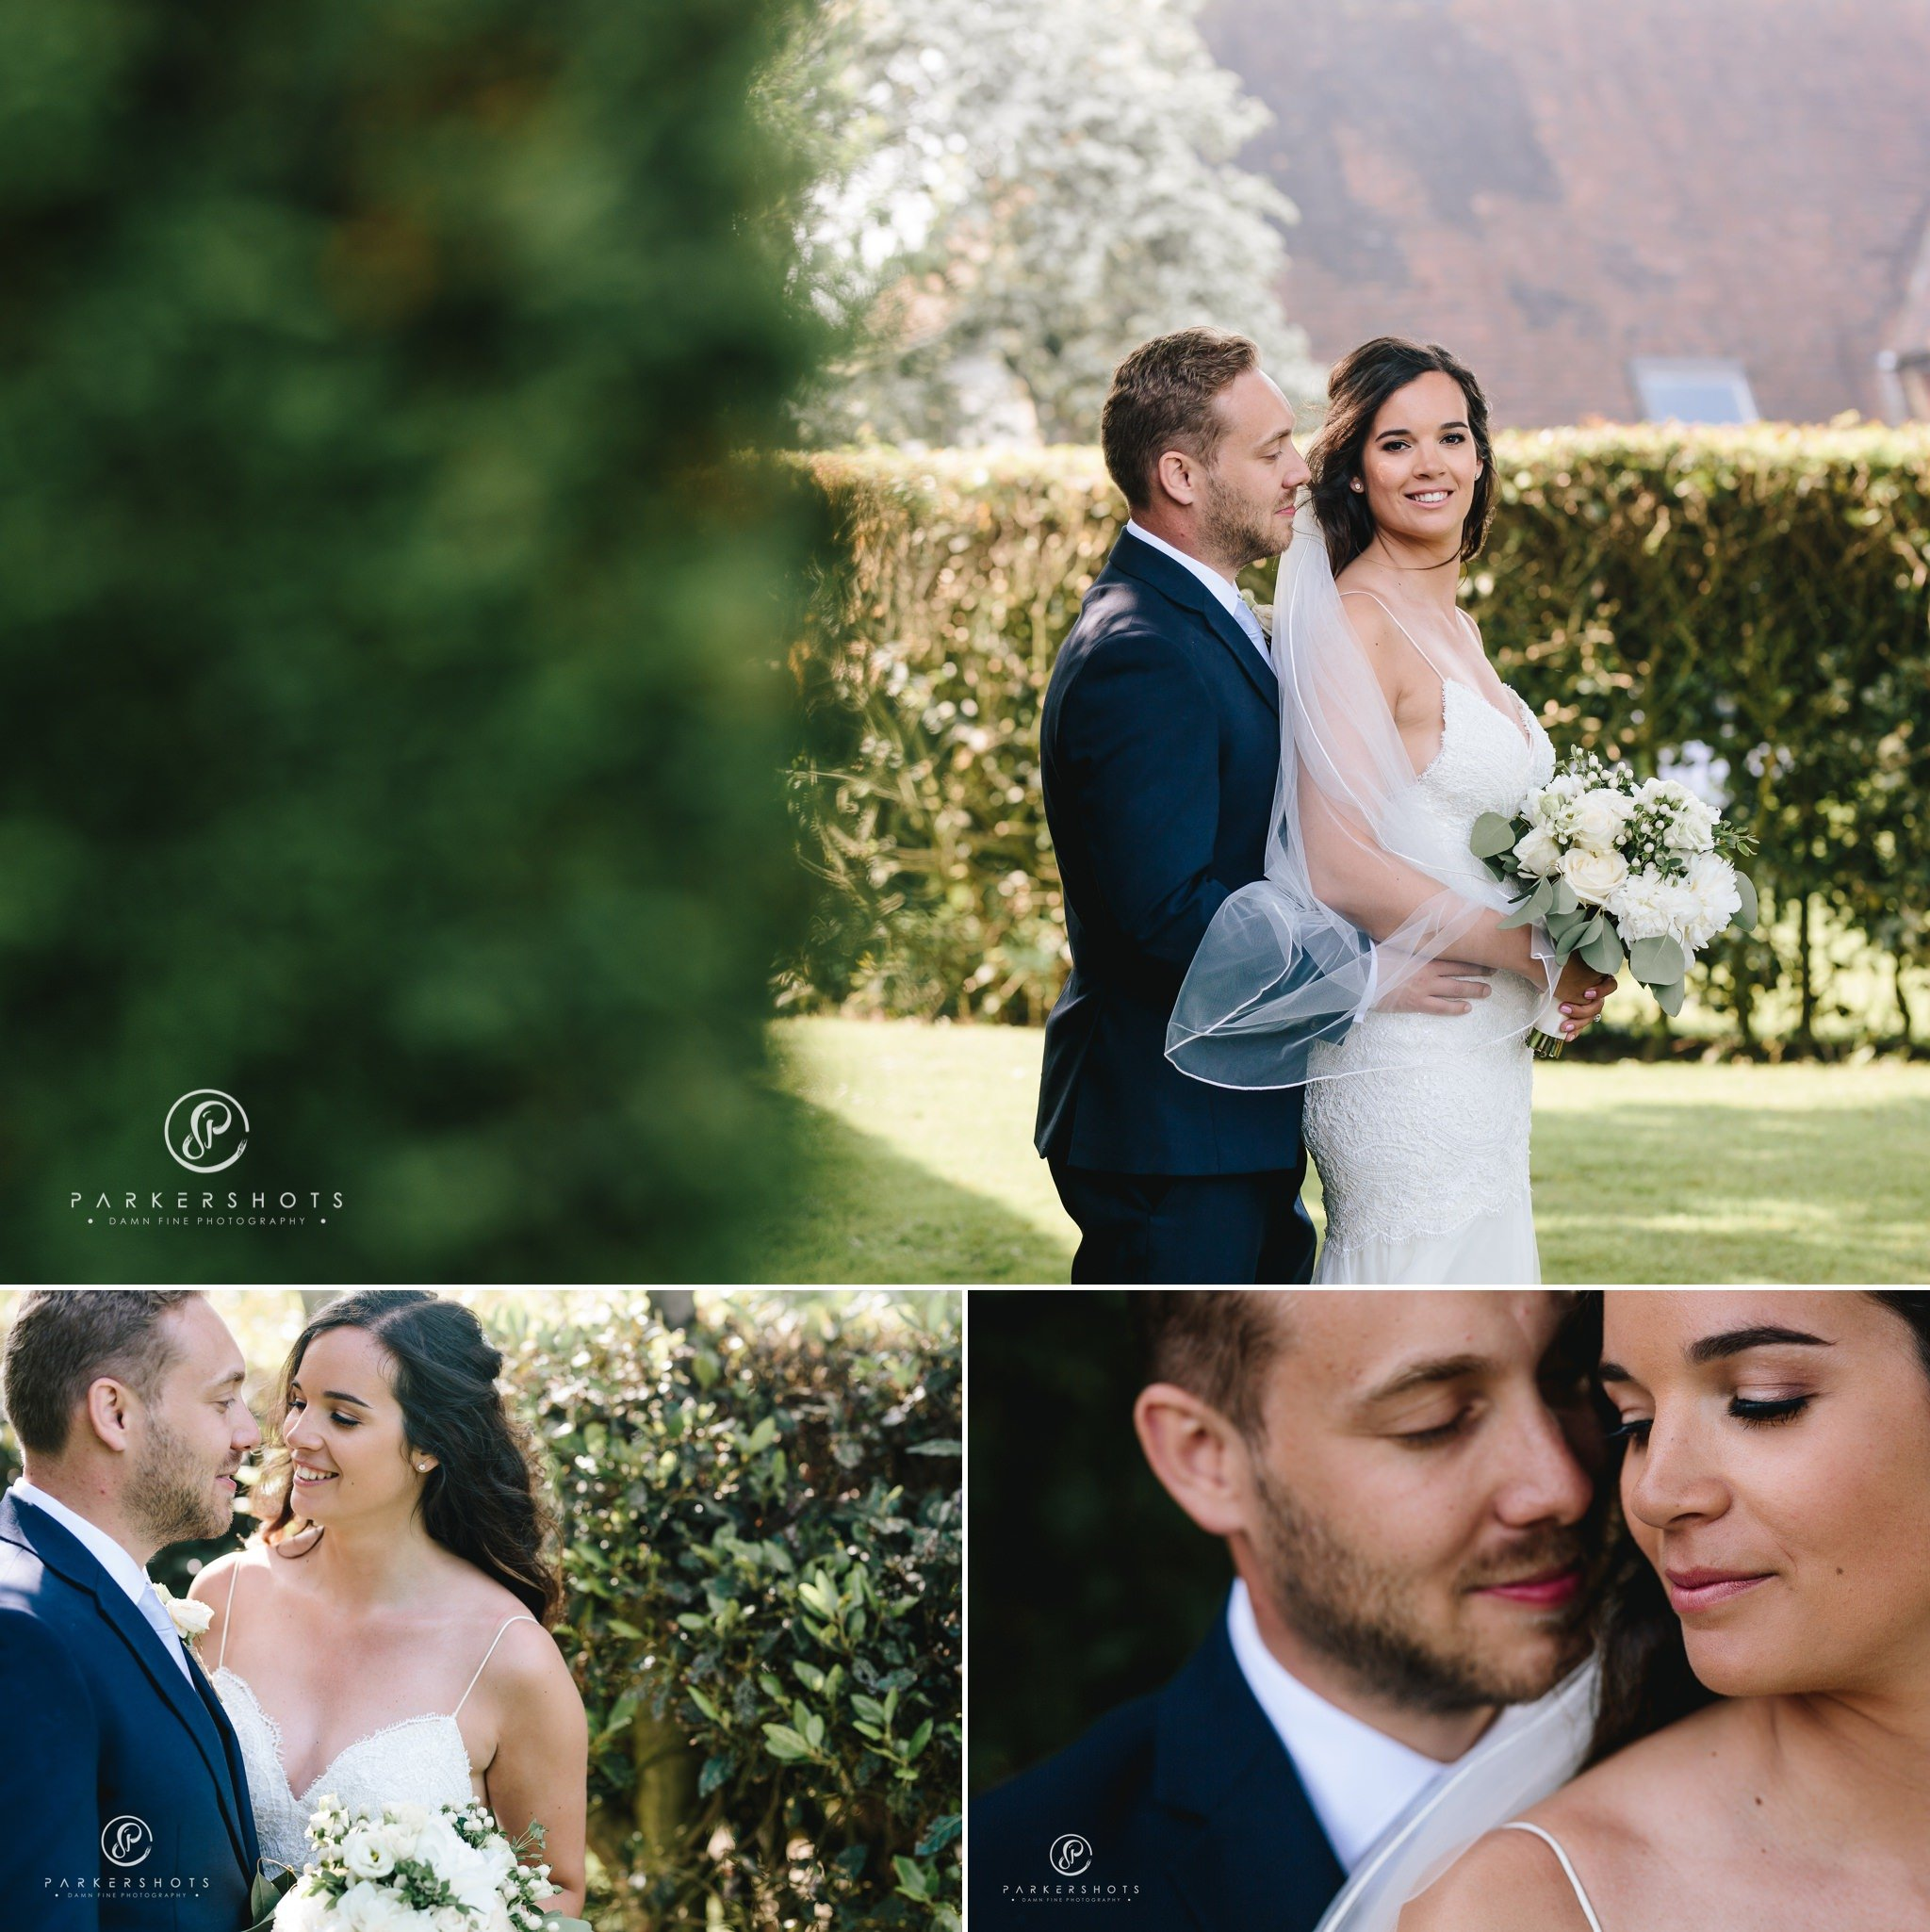 Old kent barn wedding photographer - bride and groom portraits